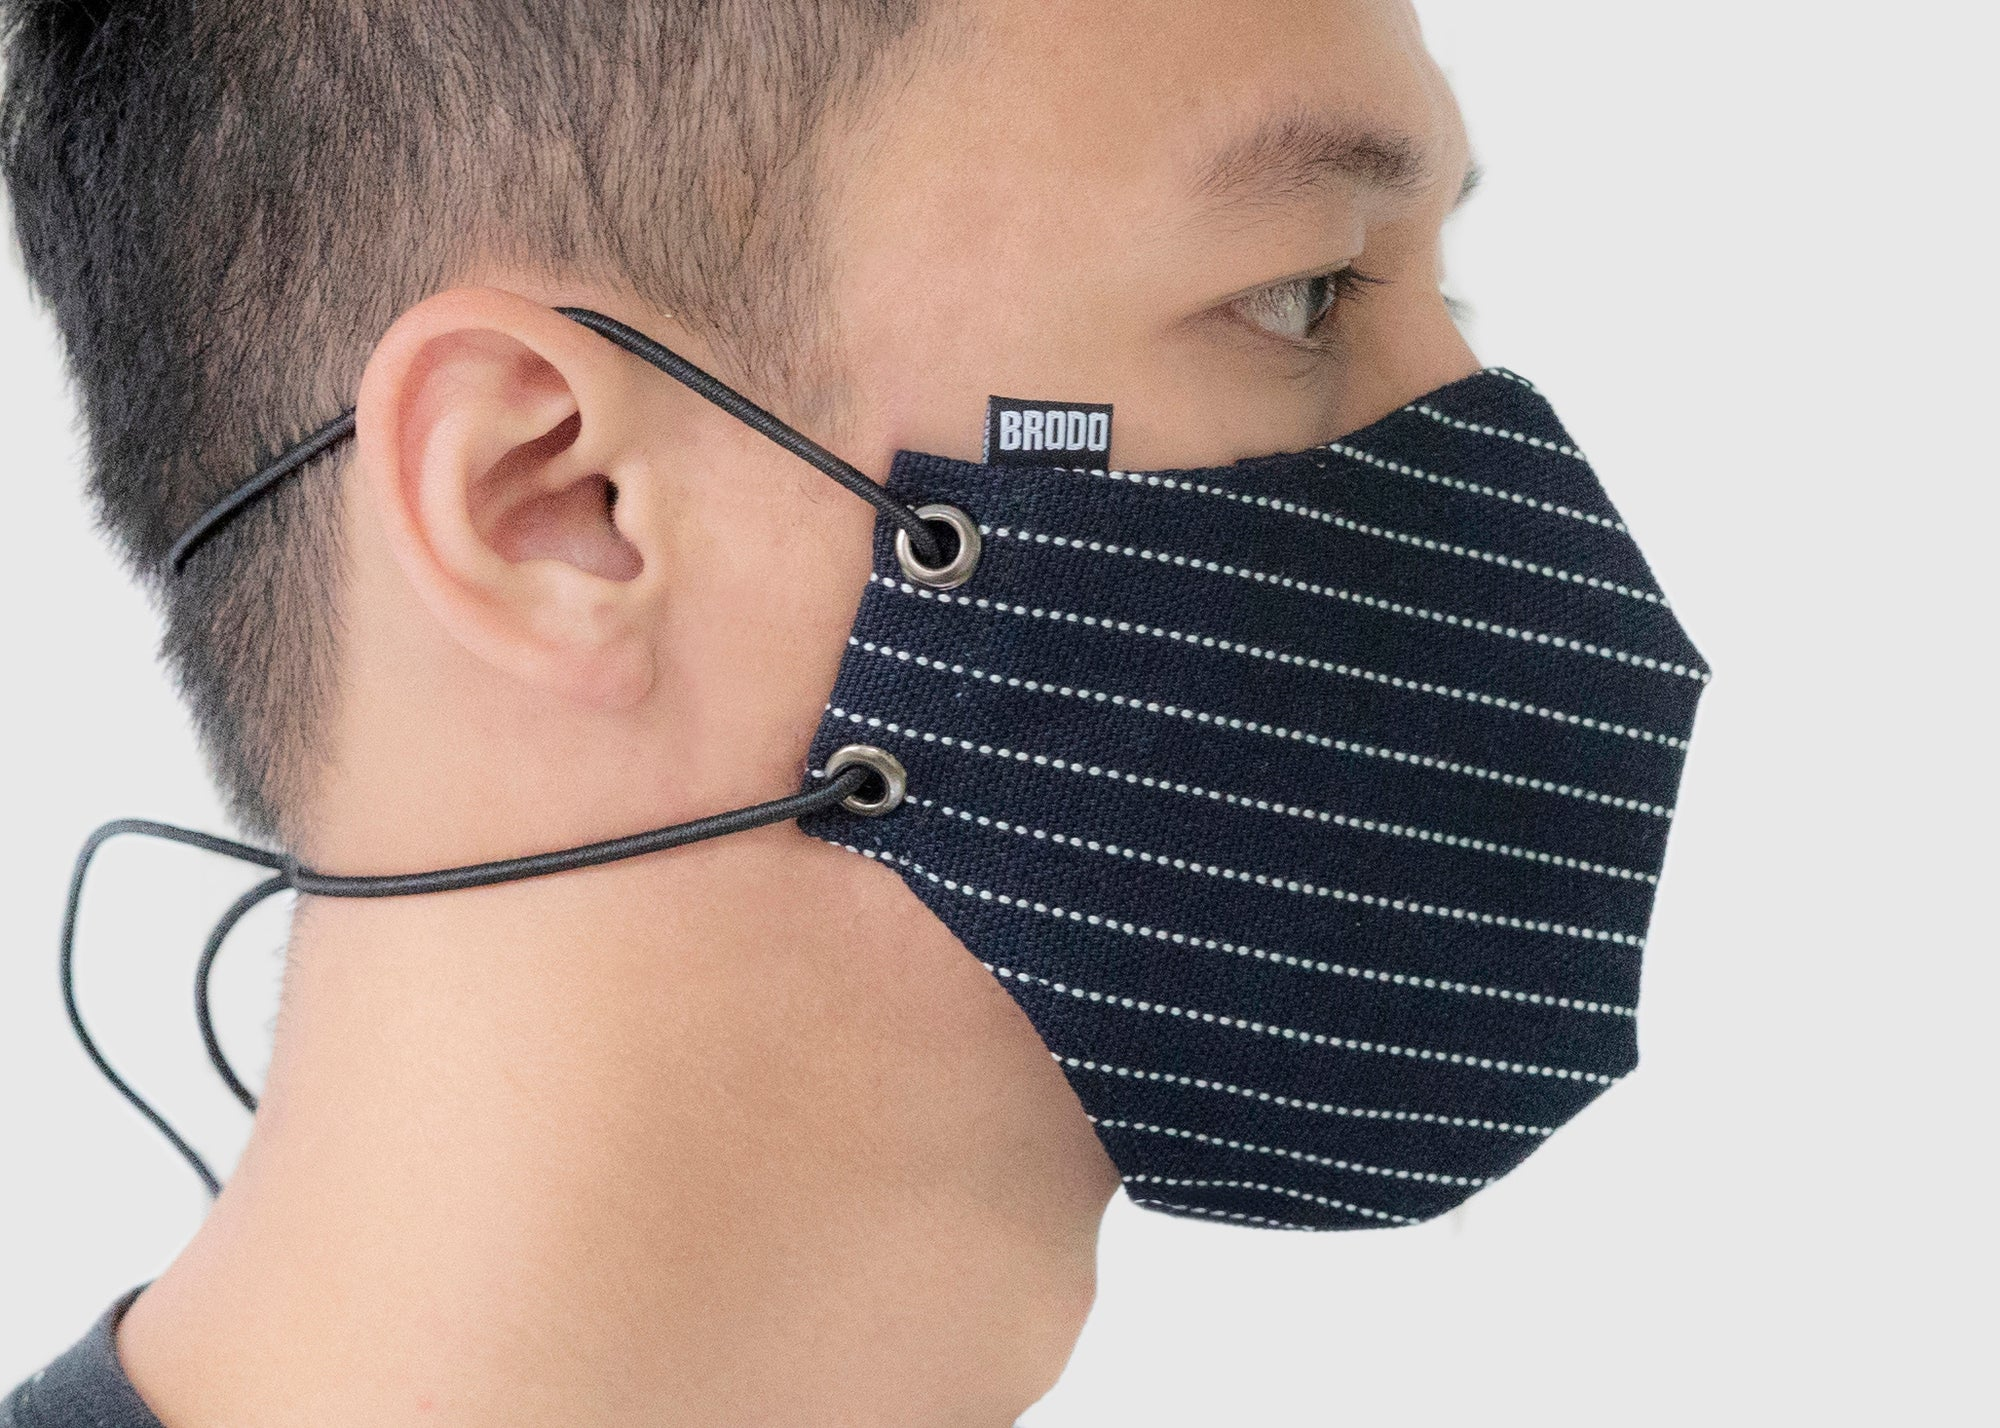 Covid Gear, Ergo Mask by Brodo